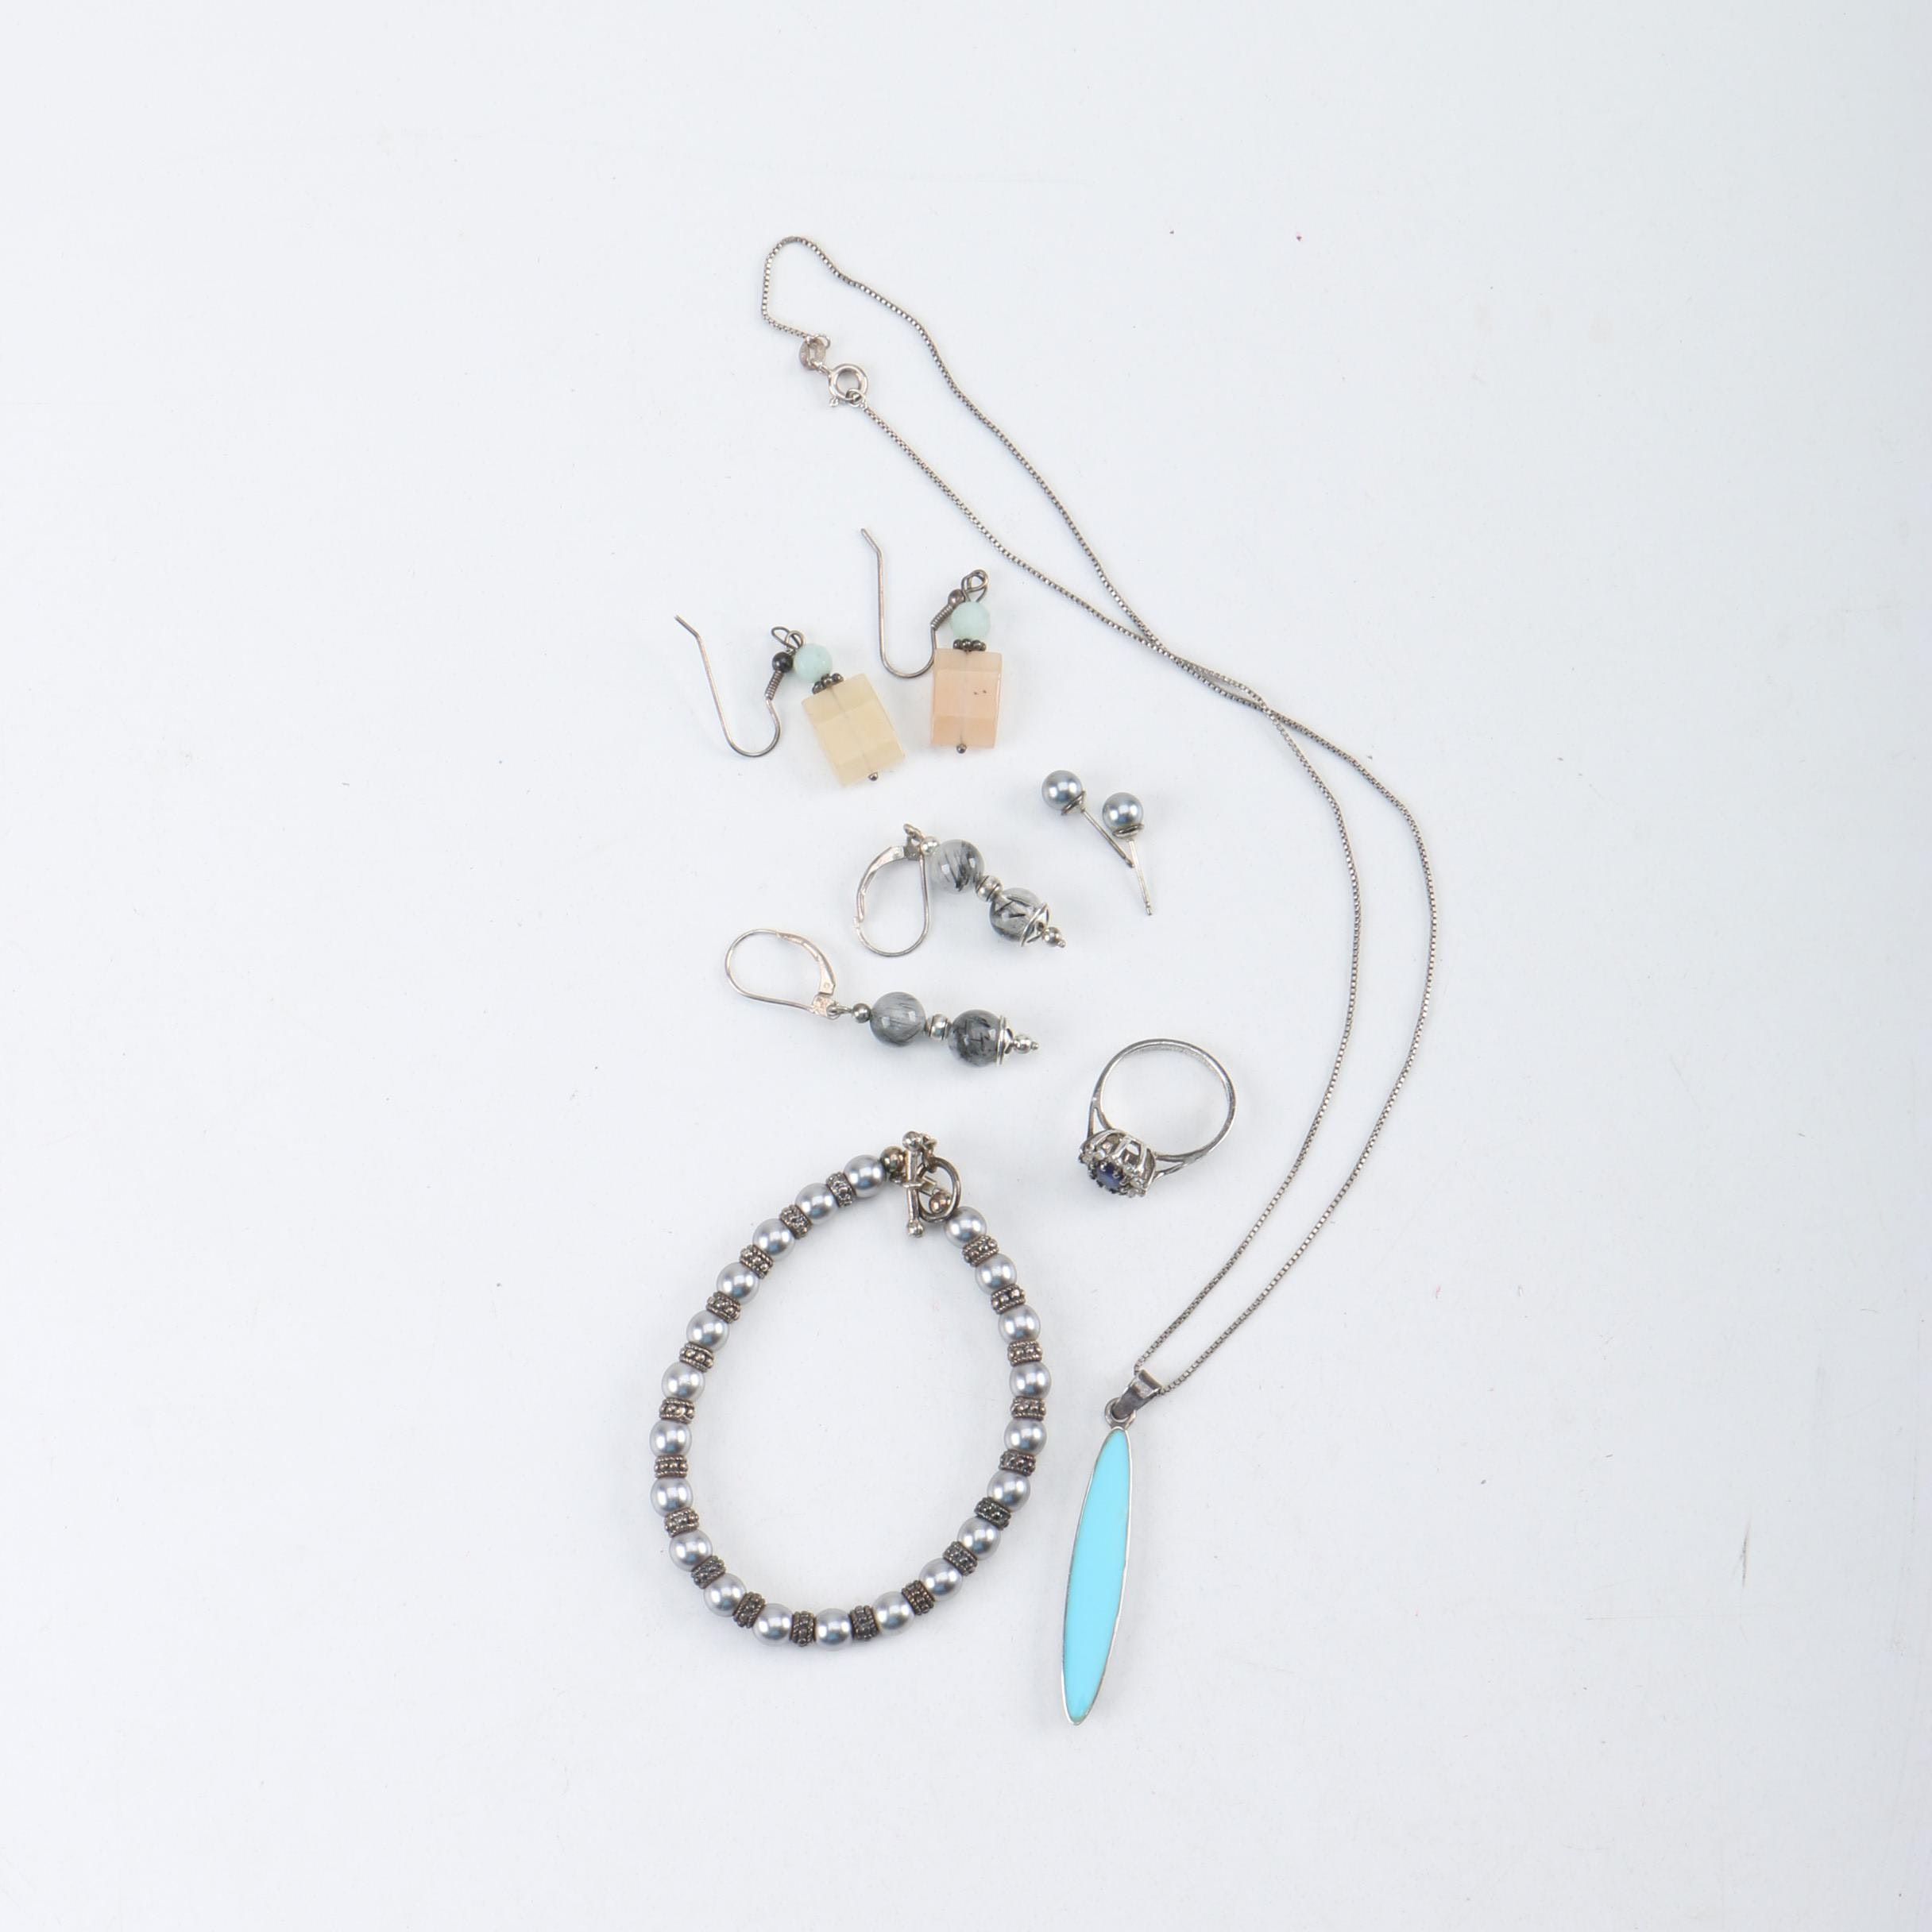 Sterling Silver Jewelry With Synthetic Pearl, Imitation Turquoise, and Glass